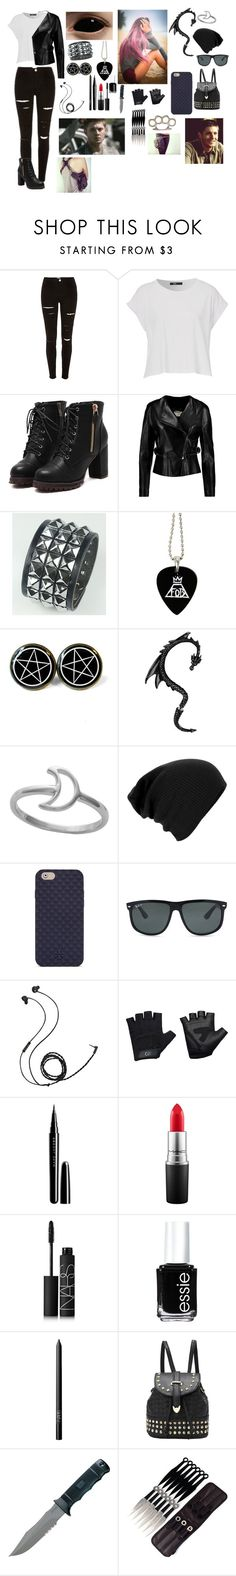 """""""Private supernatural roleplay"""" by gglloyd ❤ liked on Polyvore featuring Chloé, Tory Burch, Ray-Ban, Molami, Casall, Marc Jacobs, MAC Cosmetics, NARS Cosmetics and Essie"""